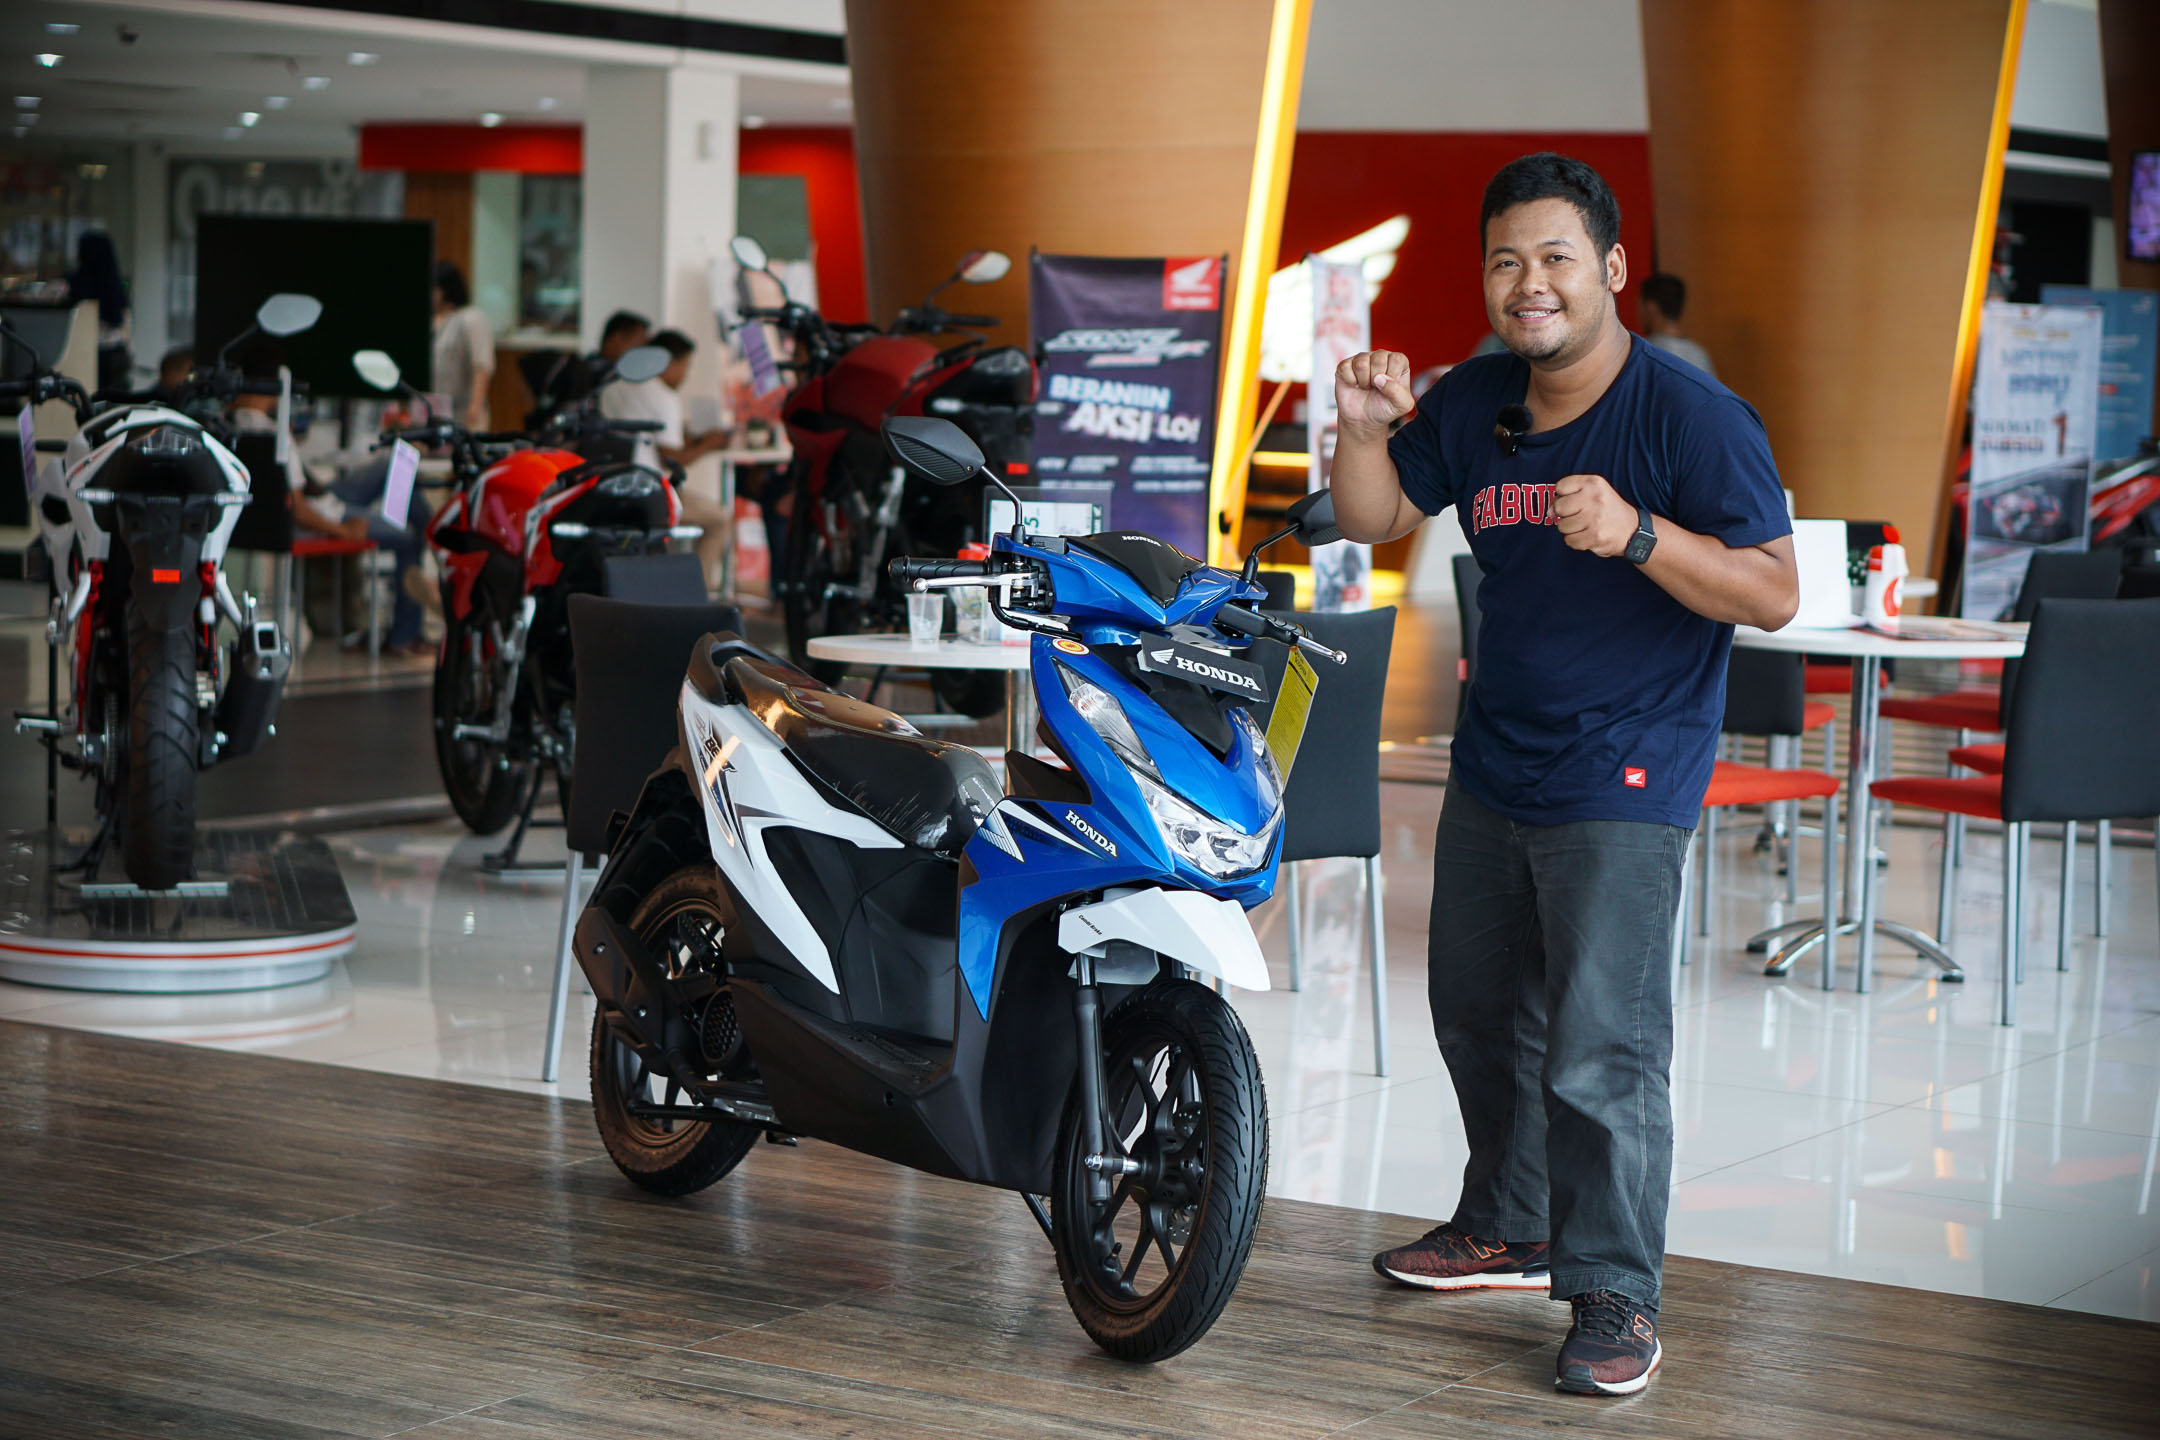 Bertemu Honda All New BEAT 2020 Putih Biru Jogja